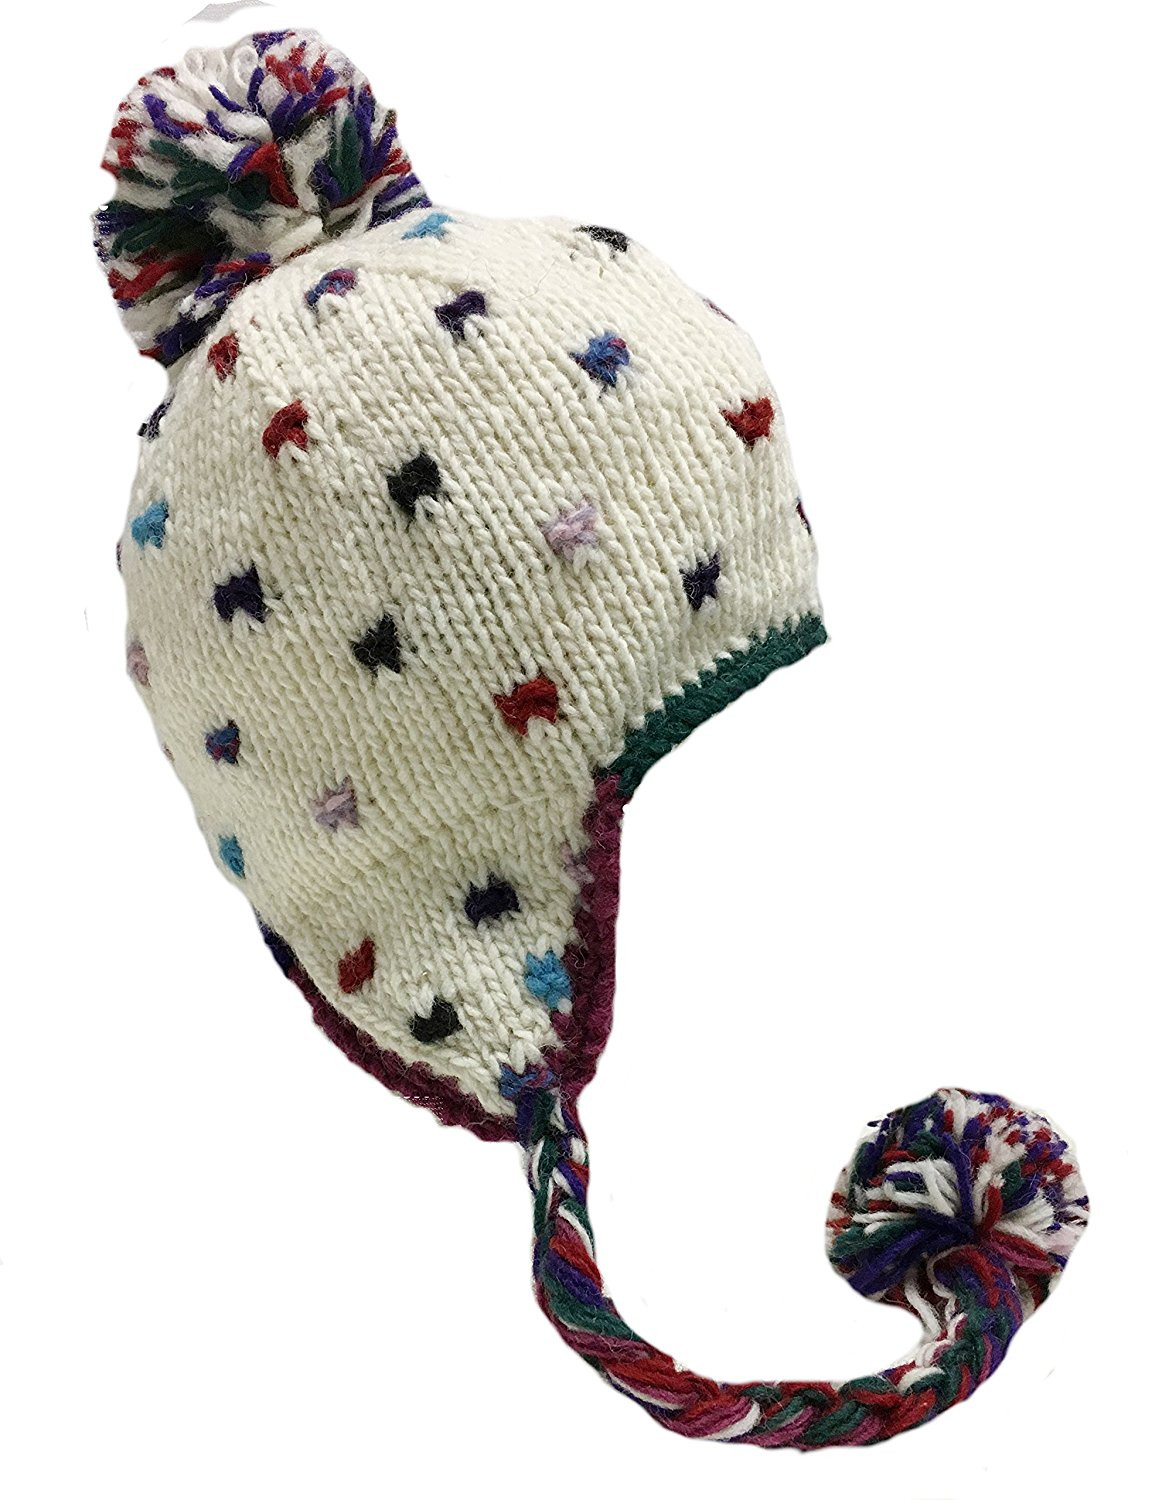 Best Of Nepal Hand Knit Sherpa Hat with Ear Flaps Fishingnew Knit Hat with Ear Flaps Of Marvelous 50 Pics Knit Hat with Ear Flaps